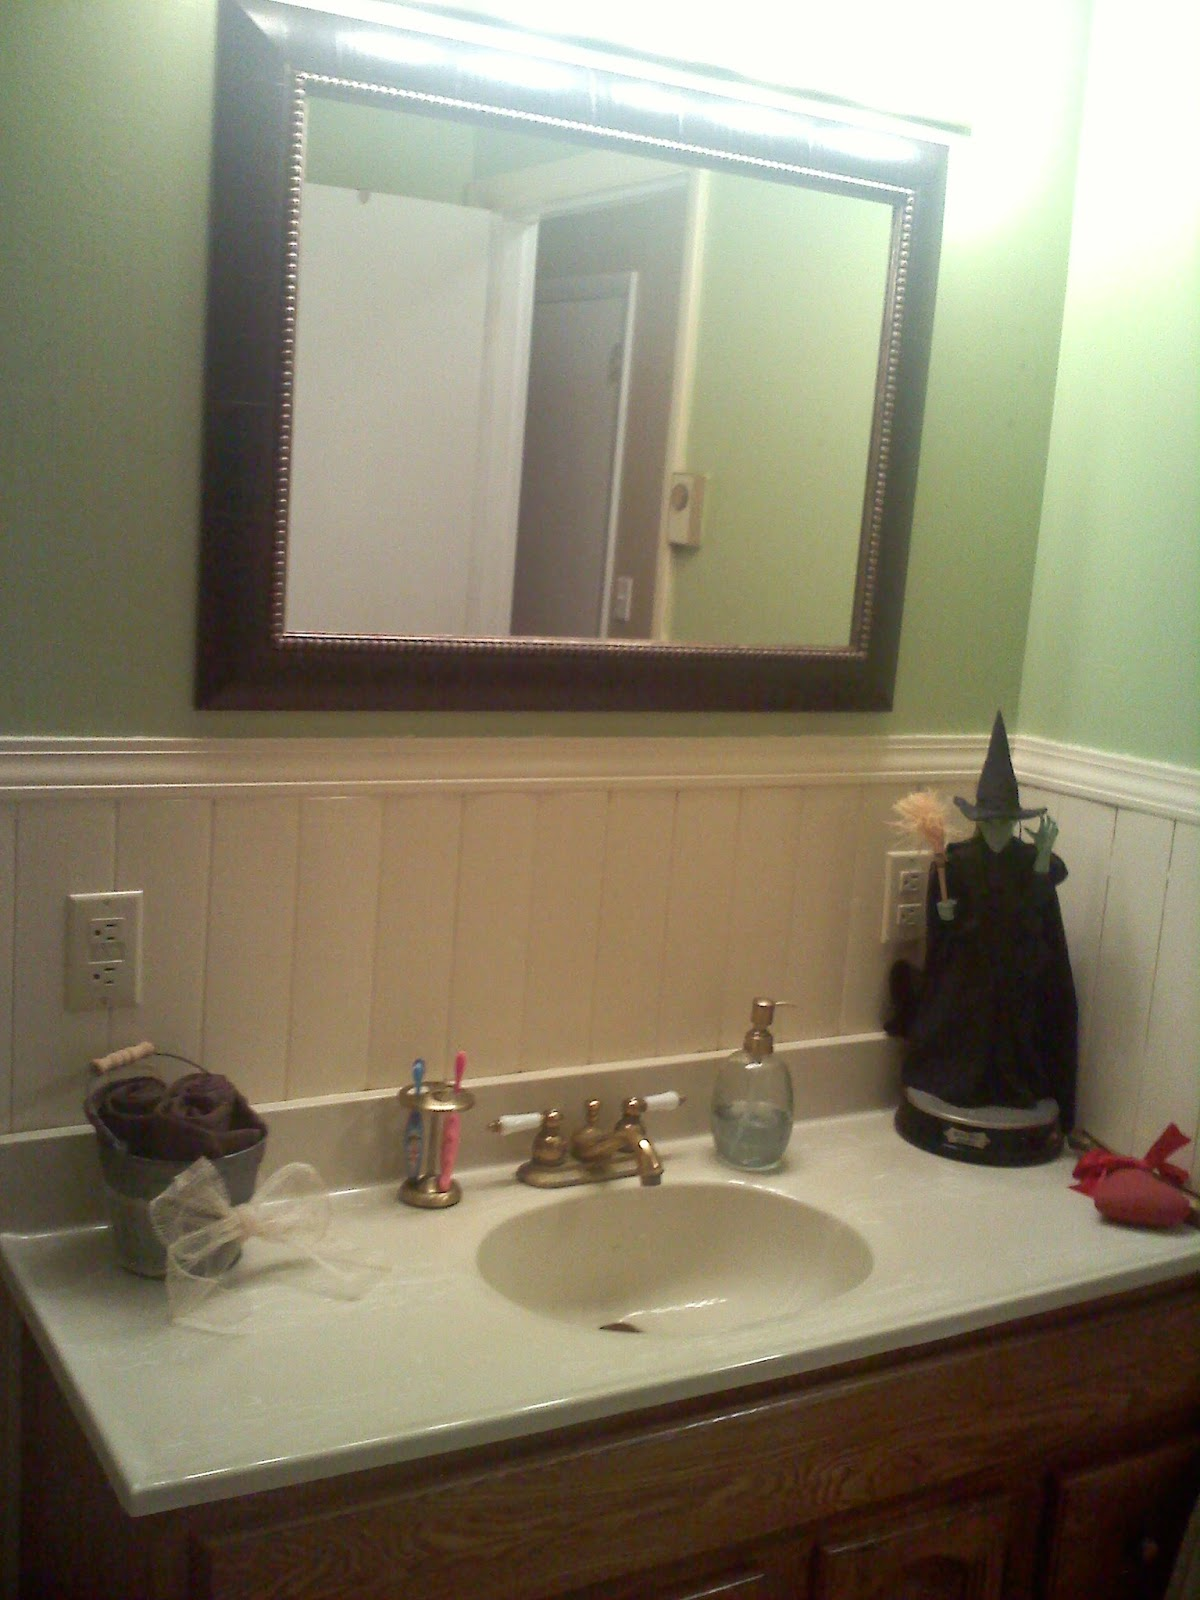 Housewife Of Independent Means Wizard Of Oz Bathroom